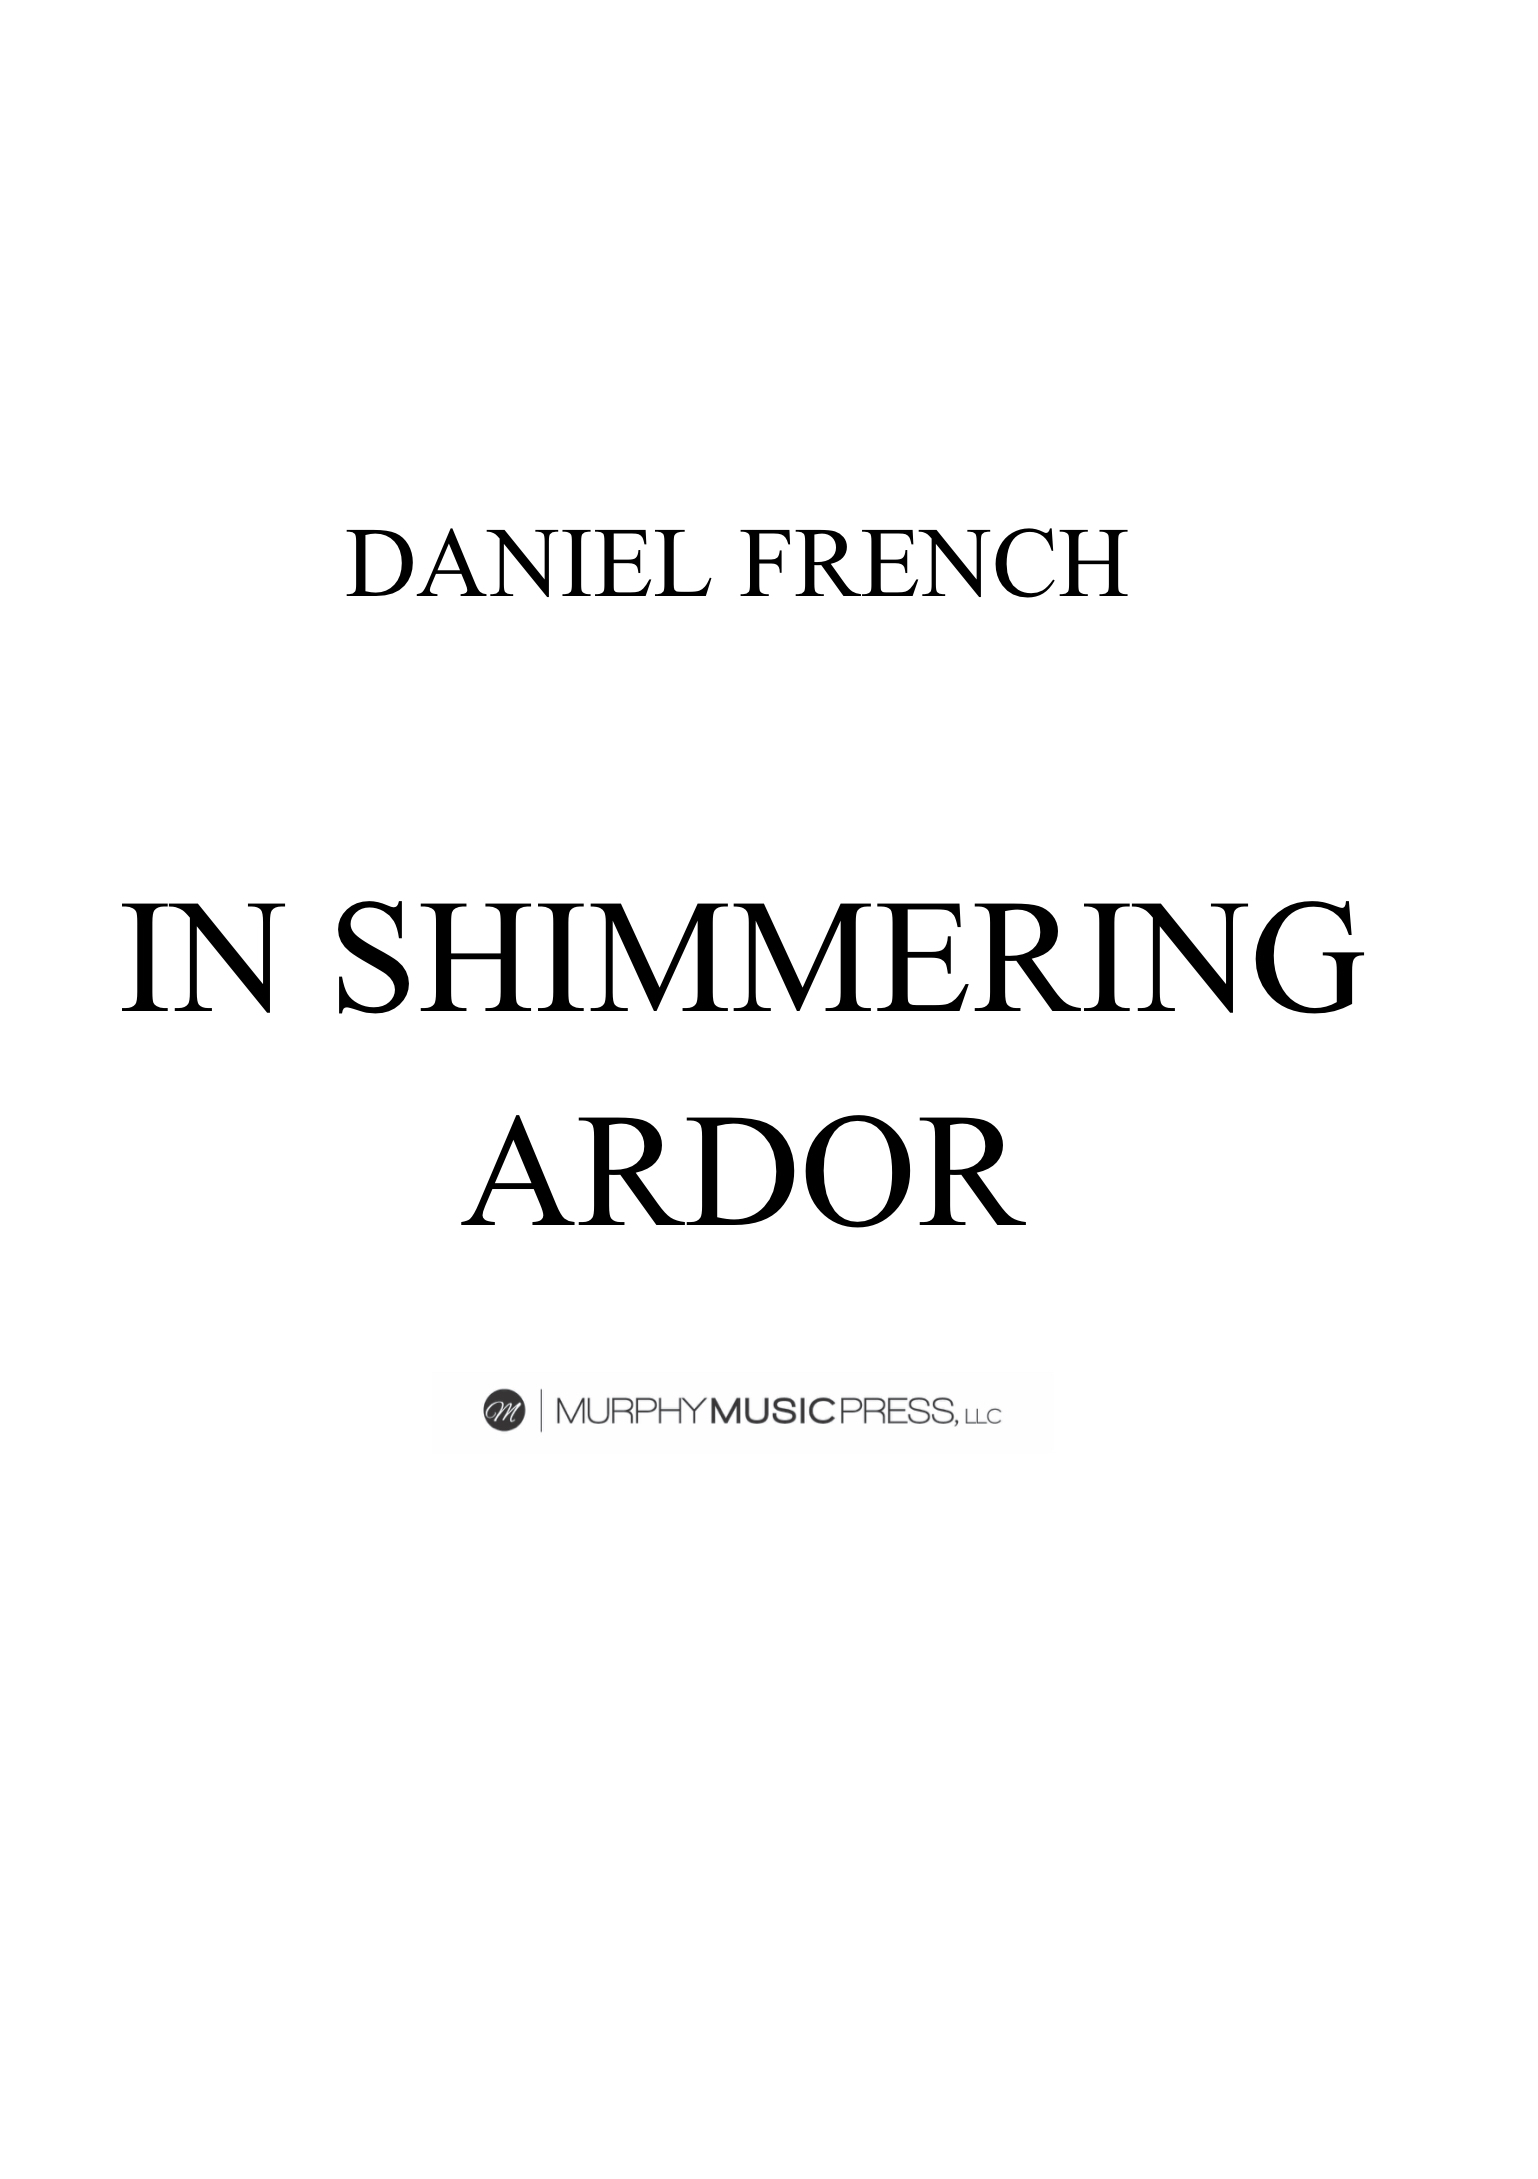 In Shimmering Ardor by Daniel French